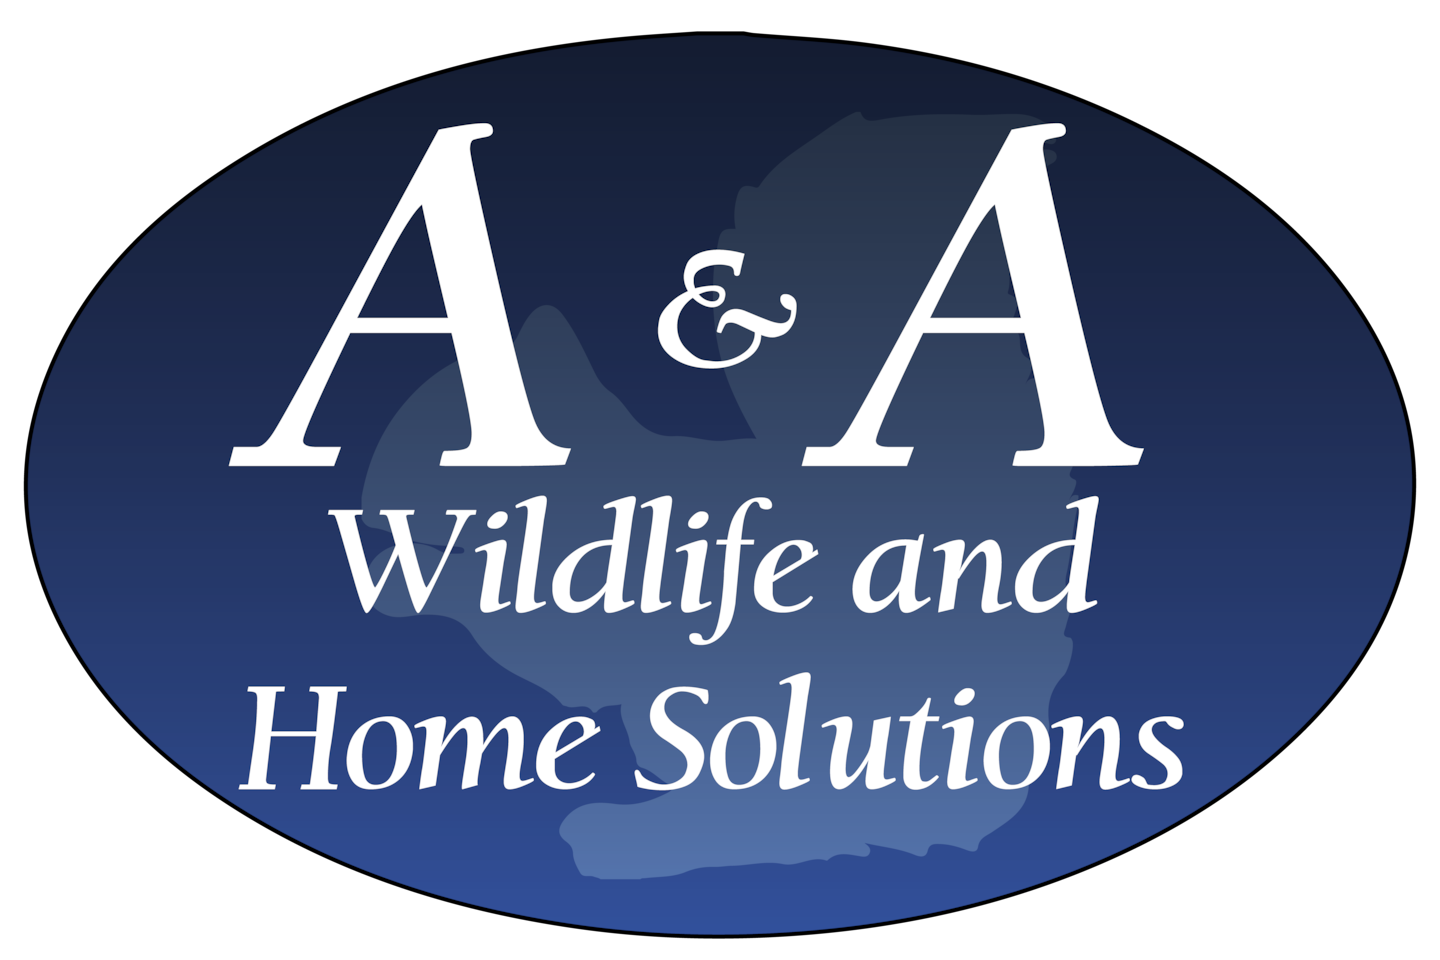 A&A Wildlife & Home Solutions